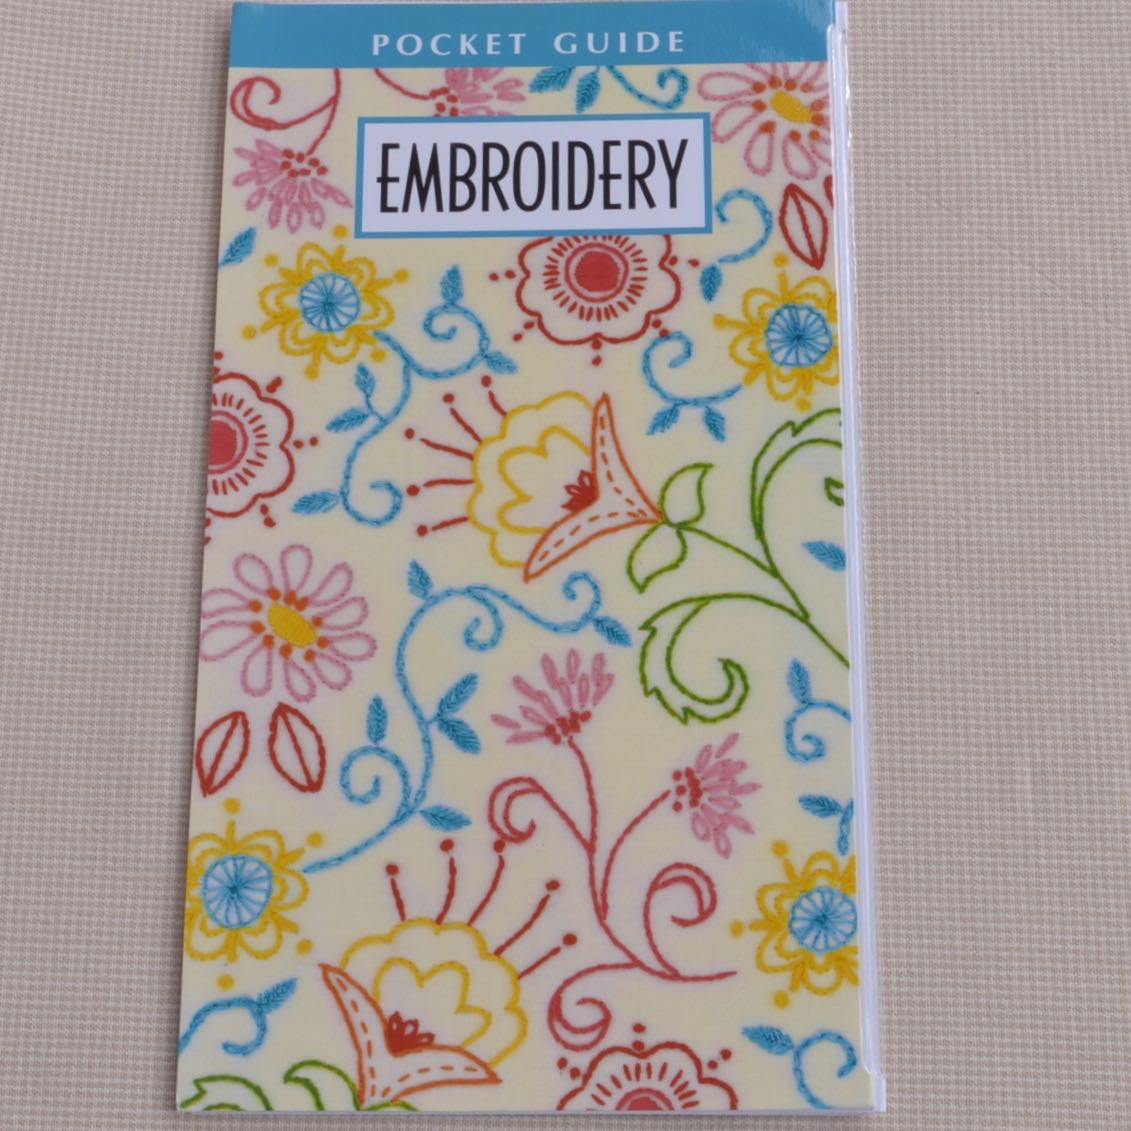 Embroidery pocket guide booklet